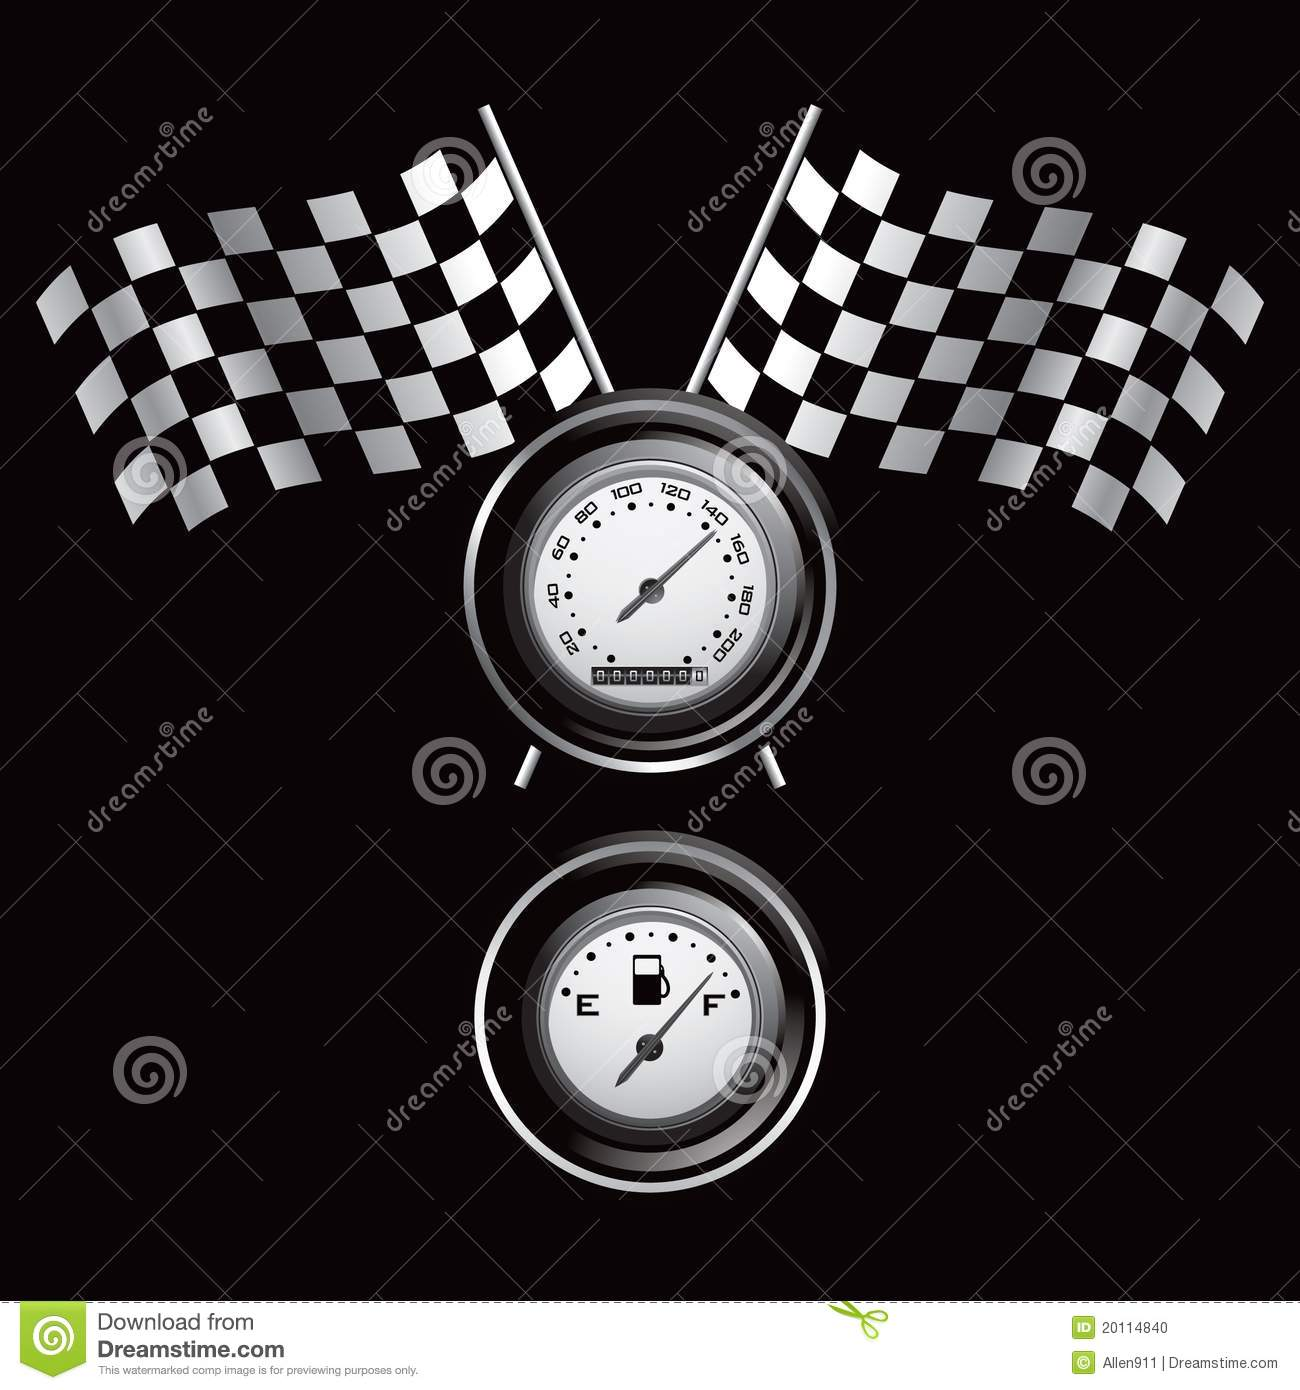 Racing Flags And Gauges